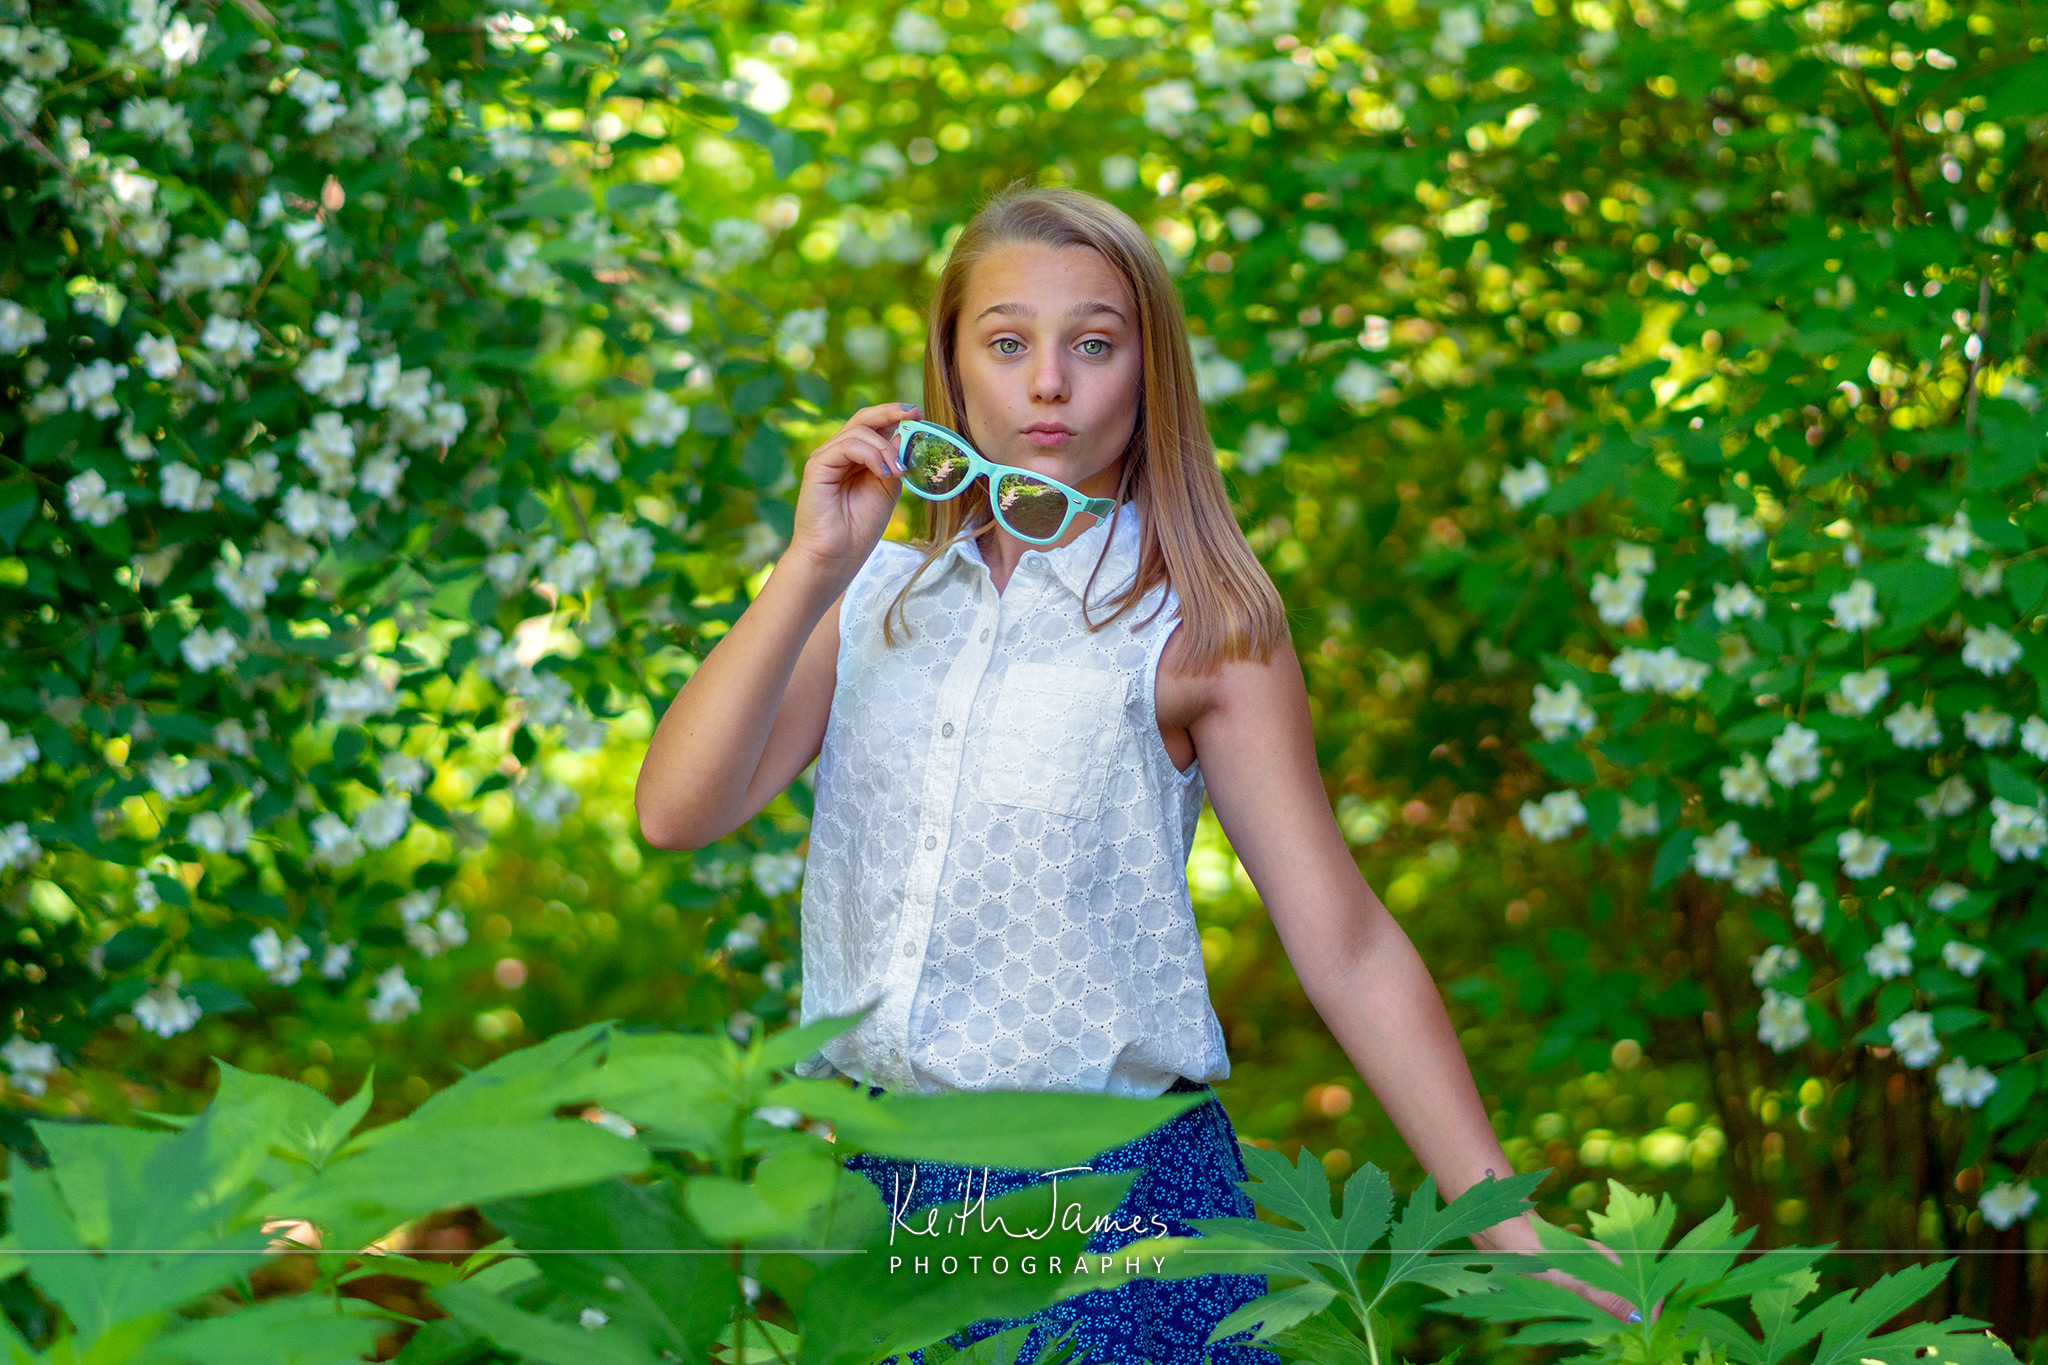 Portrait of a pre-teen girl against a backdrop of flowers.